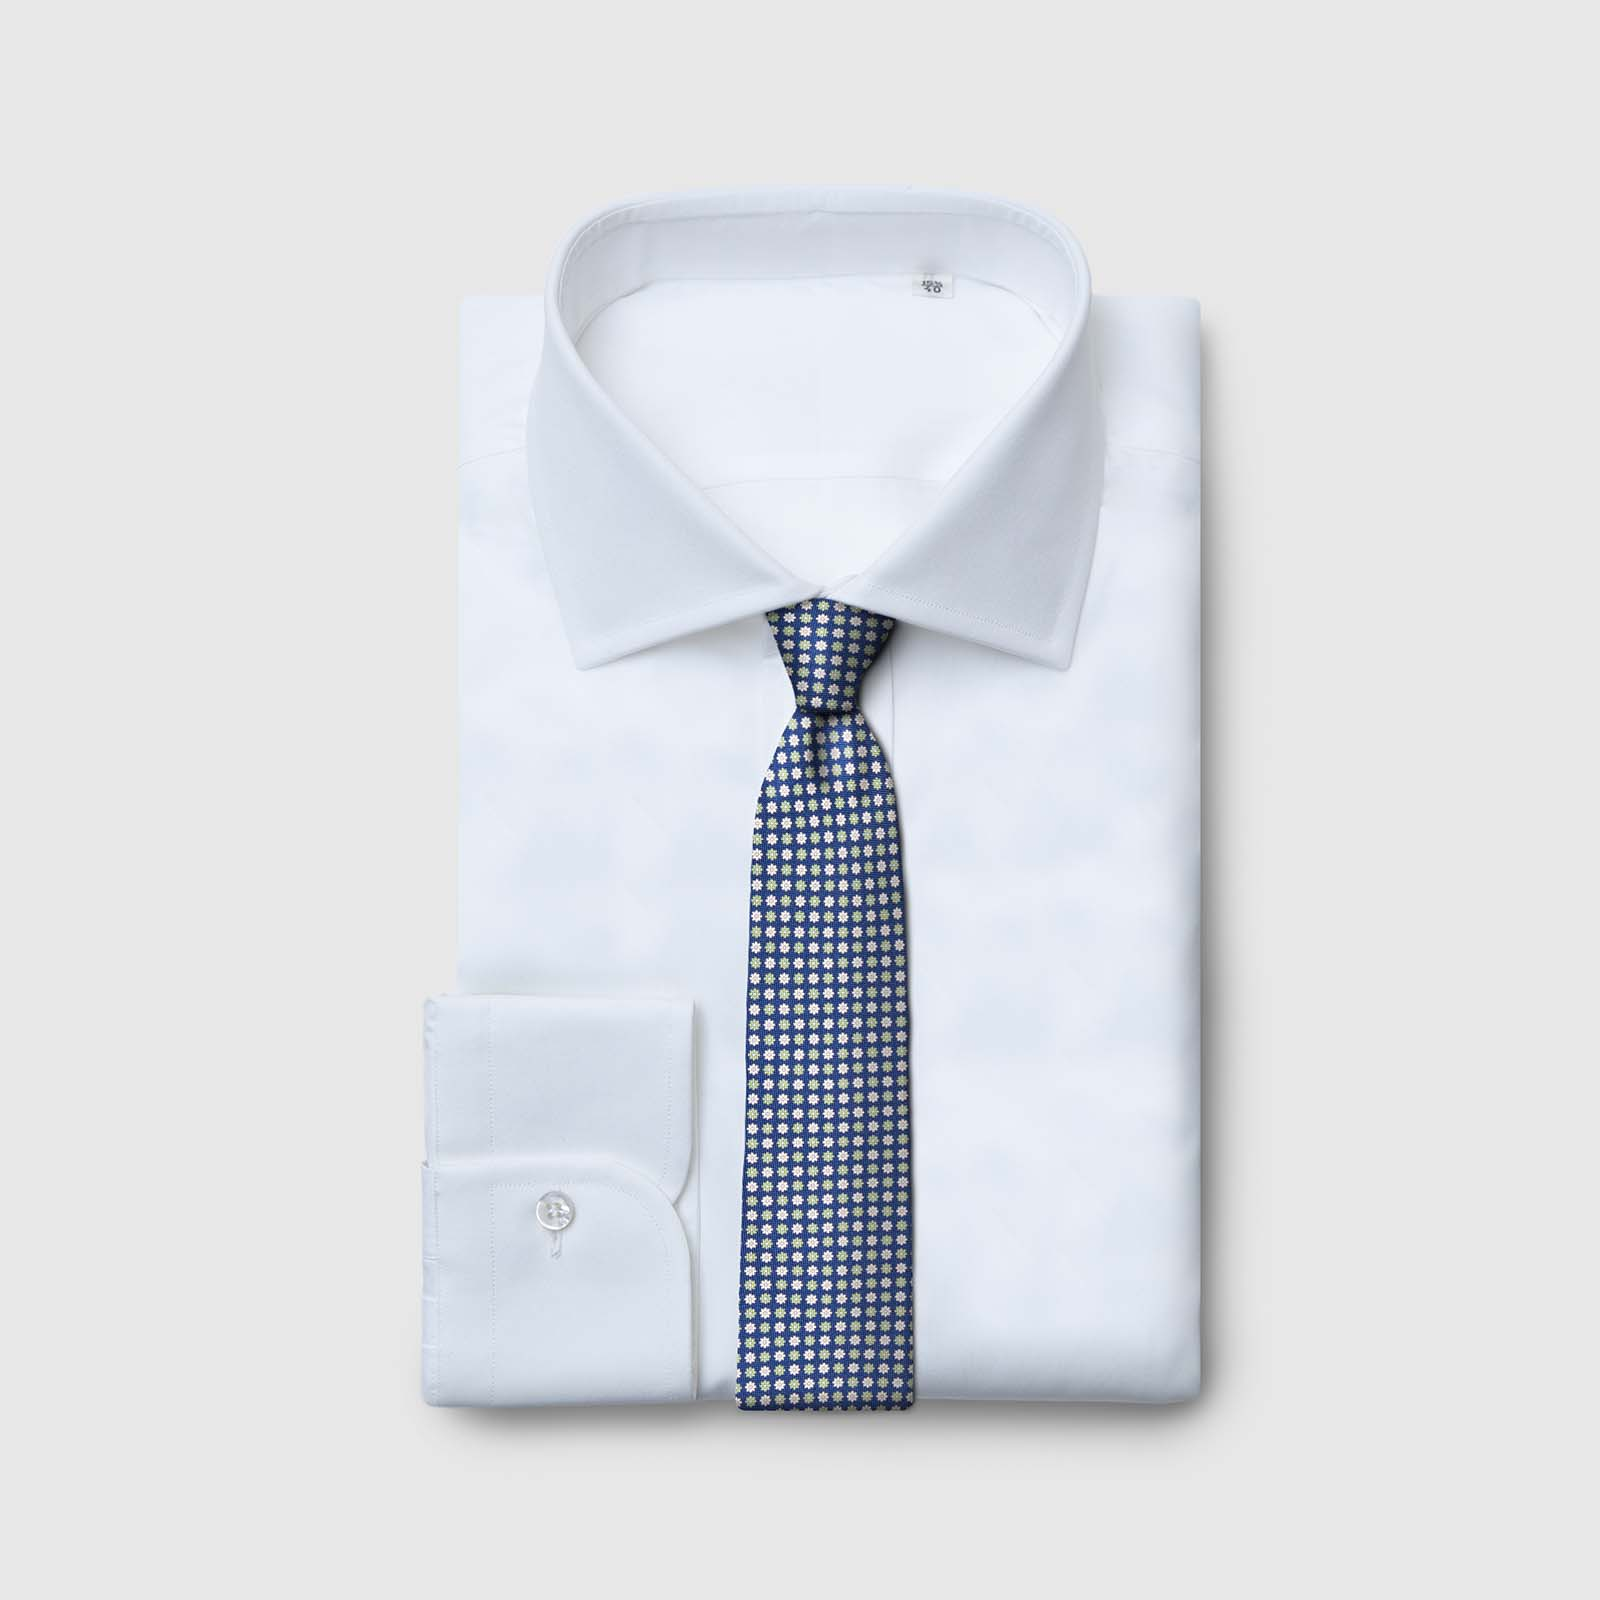 5 Fold blue Tie with green and white flowers